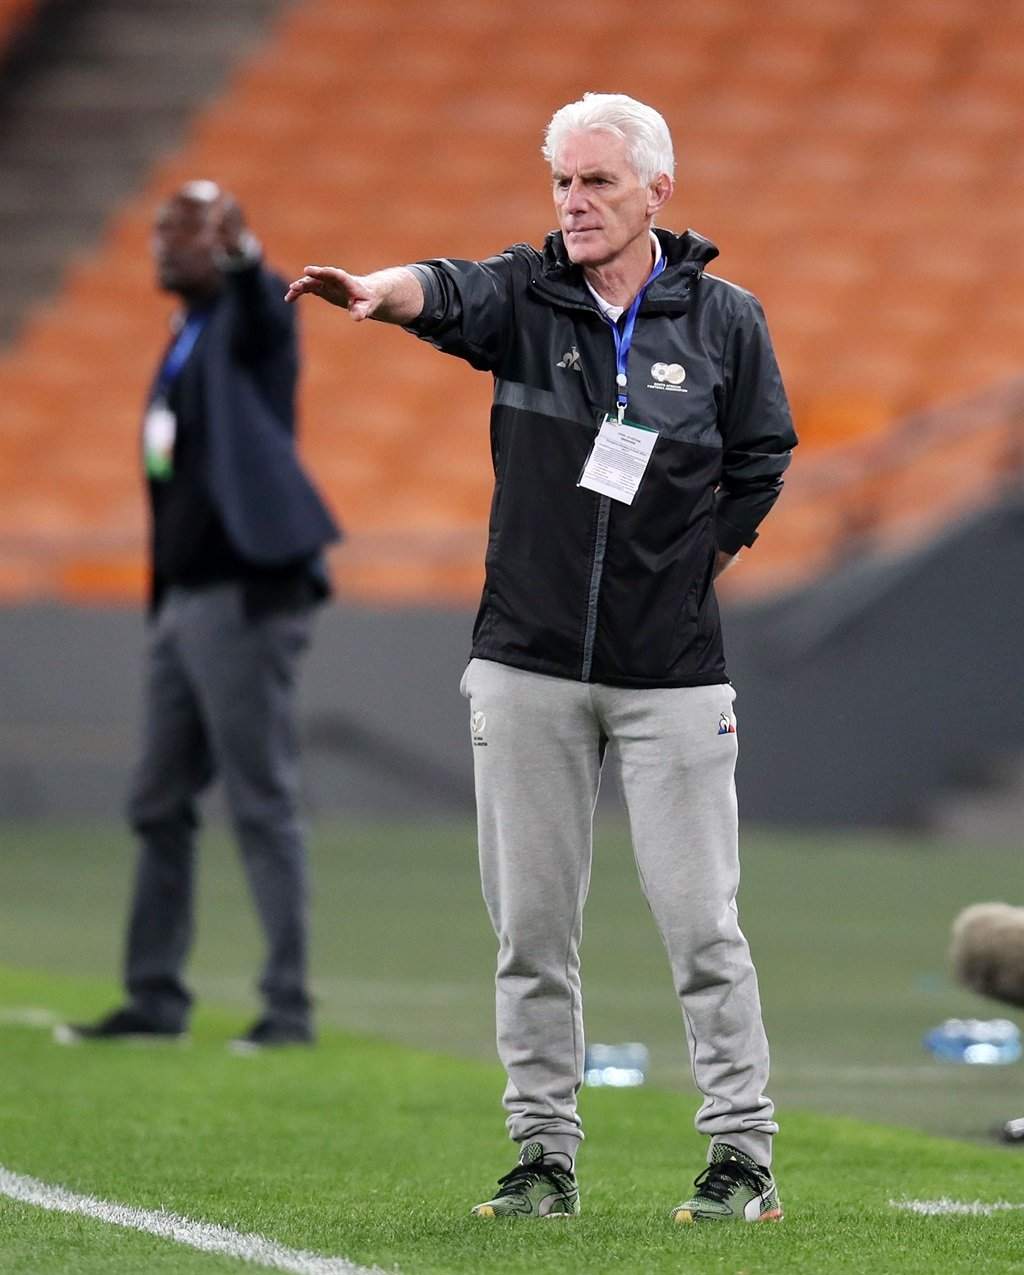 Hugo Broos, coach of South Africa during the 2022